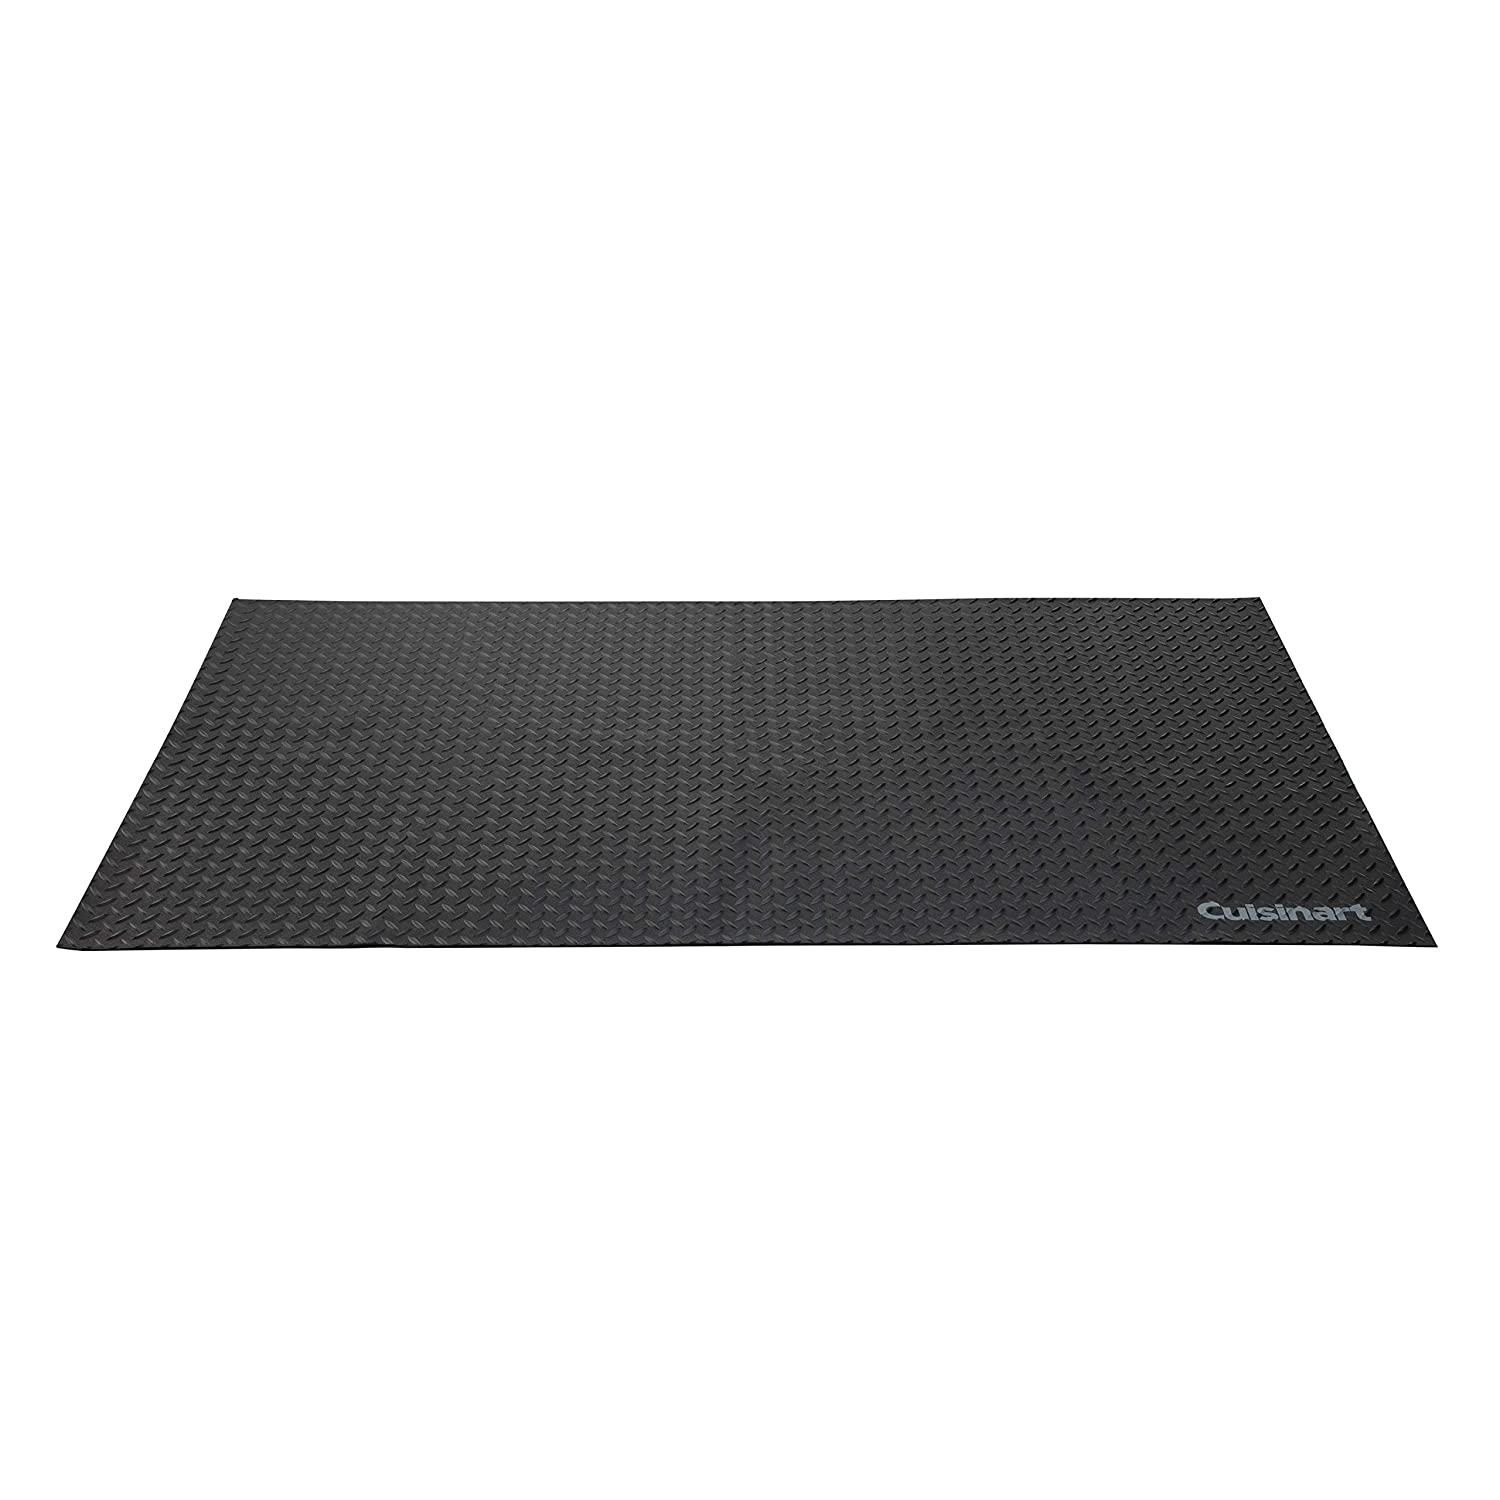 "Cuisinart CGMT-300 Premium Deck and Patio Grill Mat, 65"" x 36"